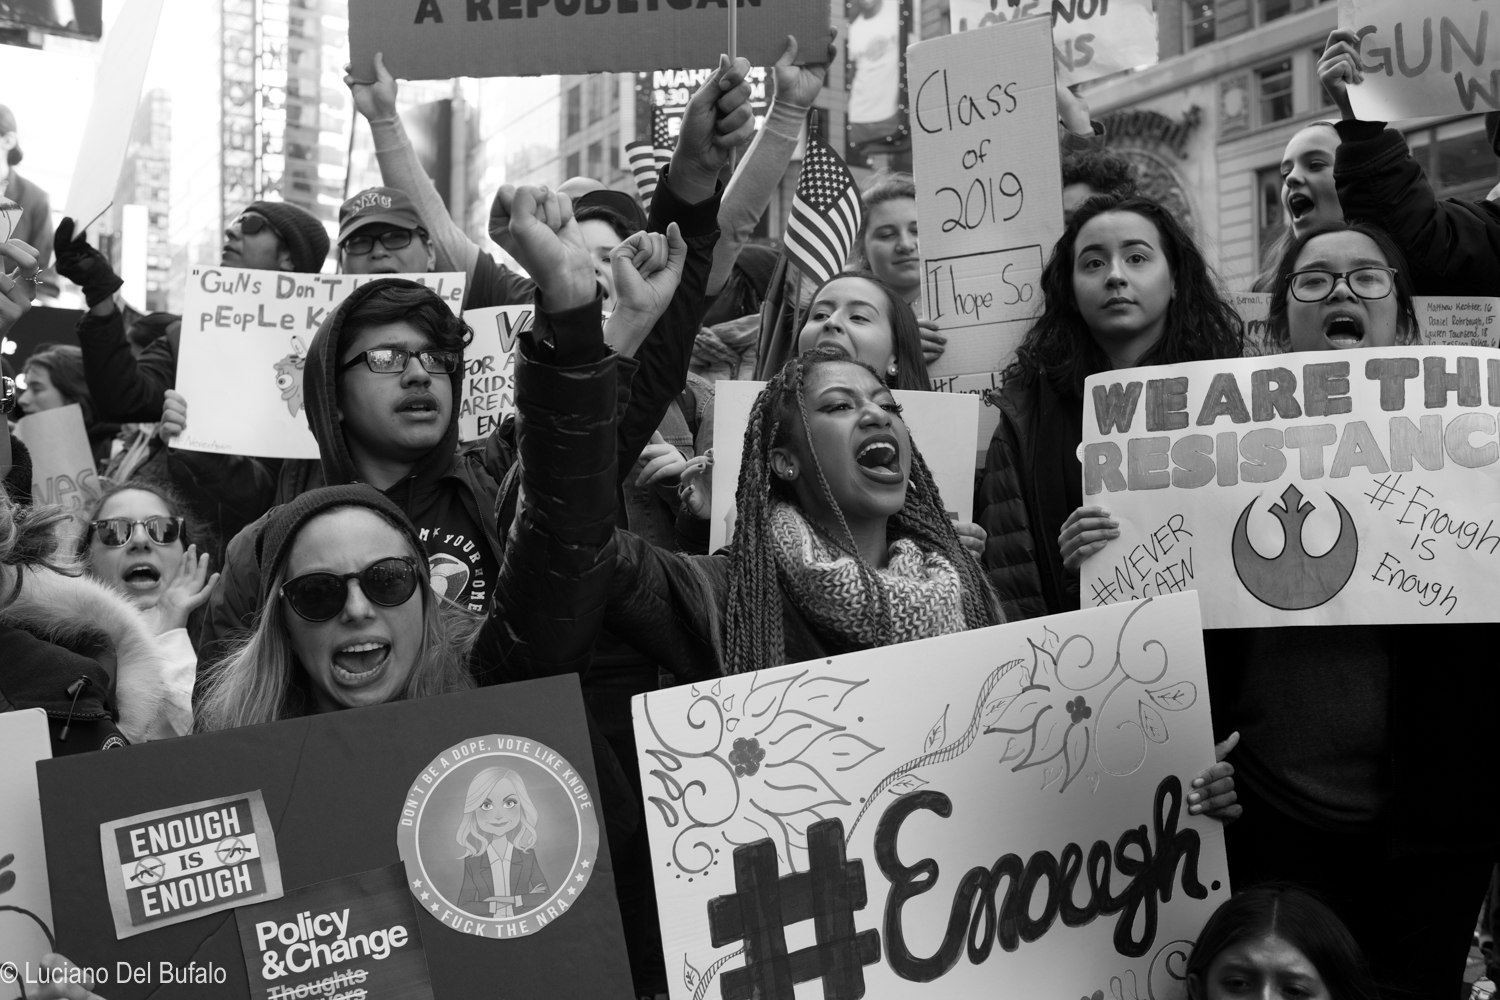 Enough N. 2 March for Our Lives